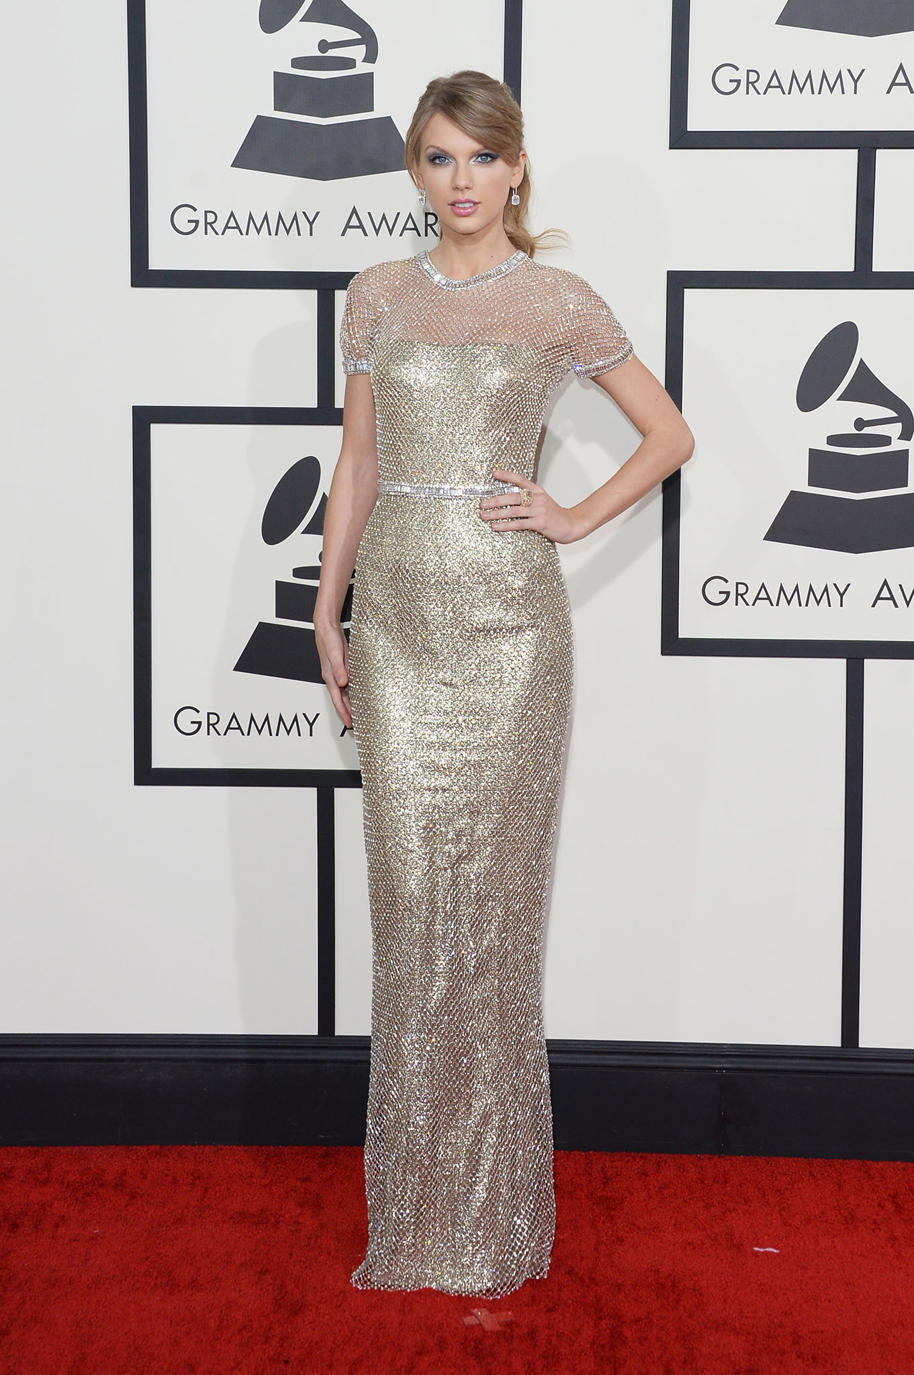 And of course, one more peek at Taylor Swift's glittering look.